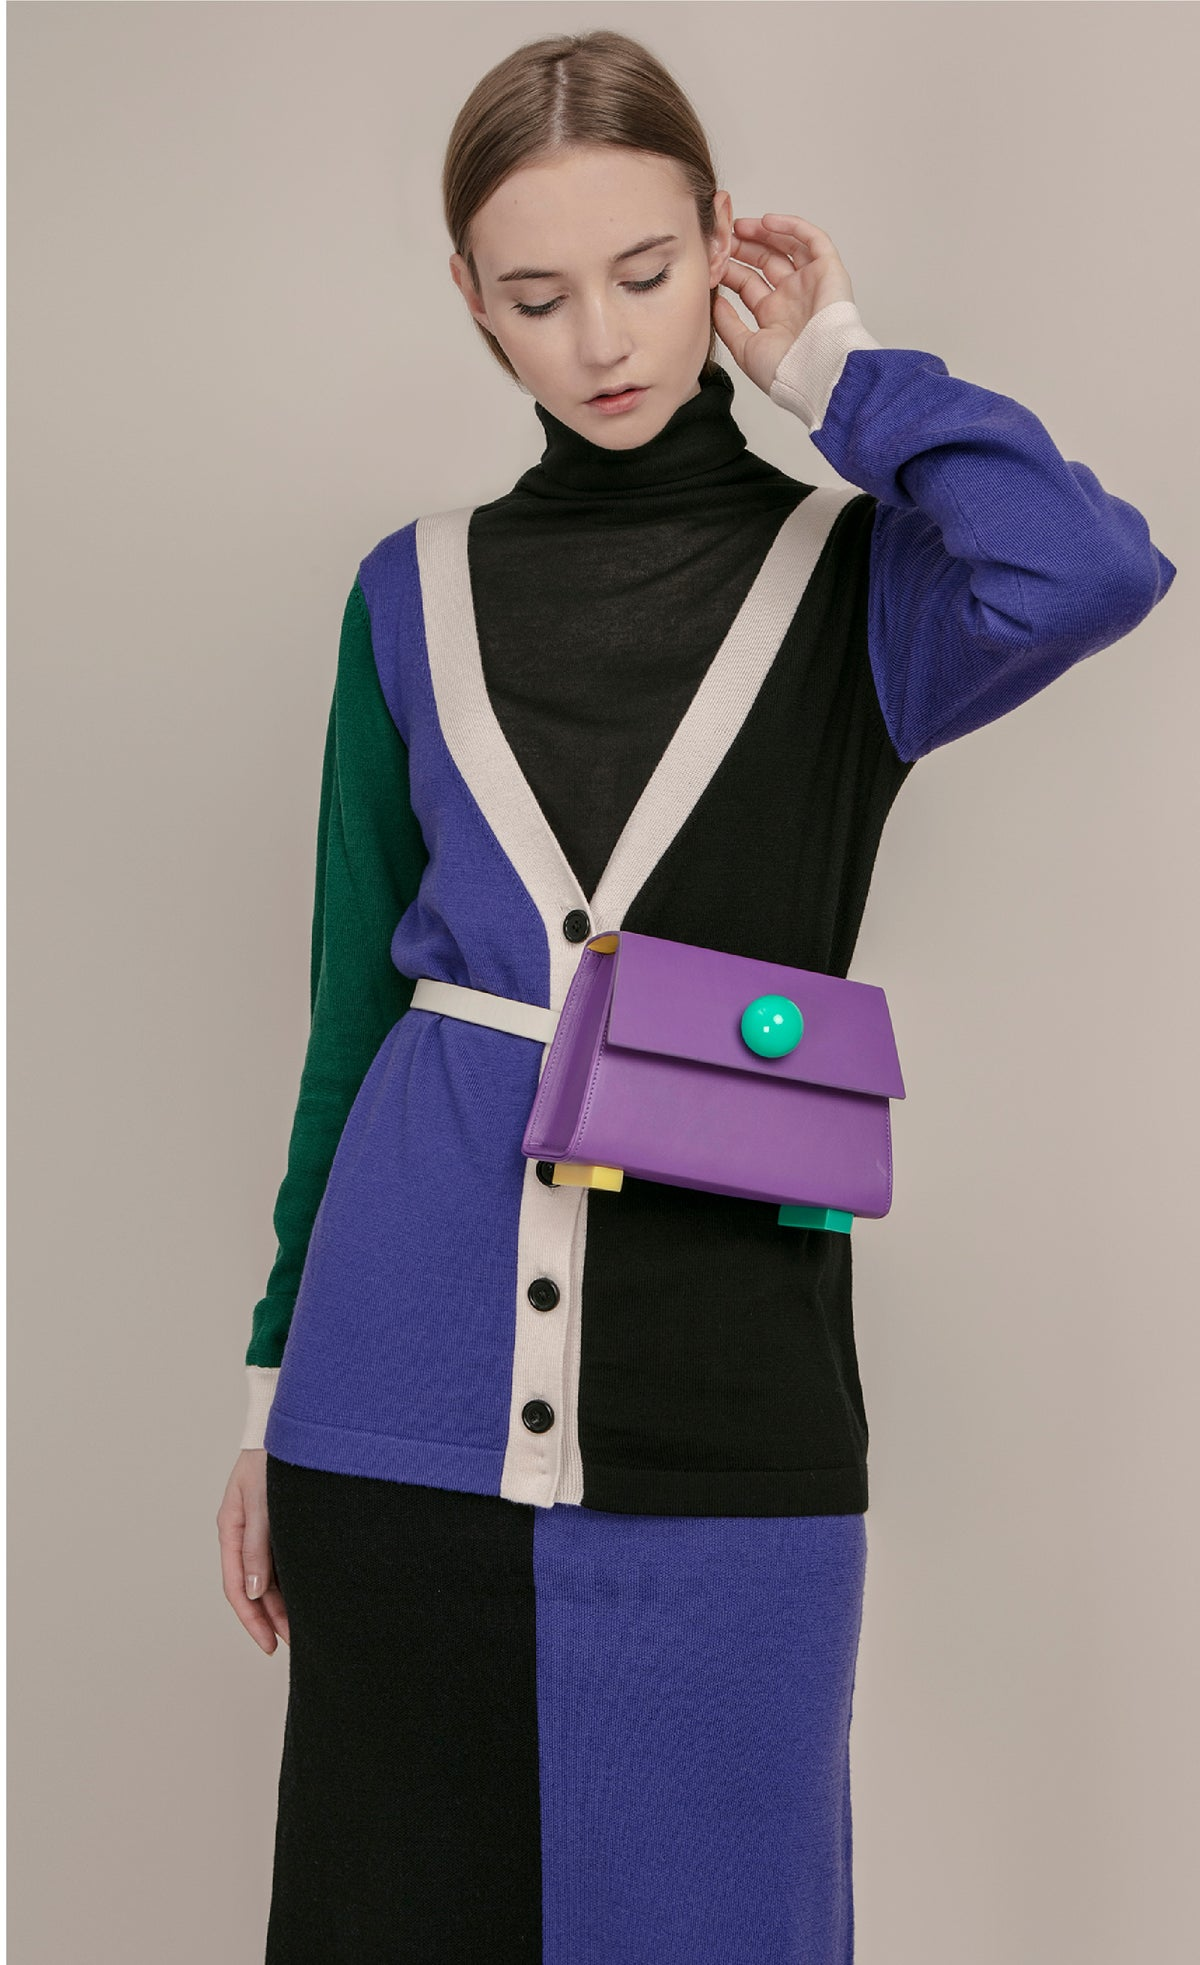 Image of Reversible V Neck colourblock button back wool cardigan _ Green and Purple